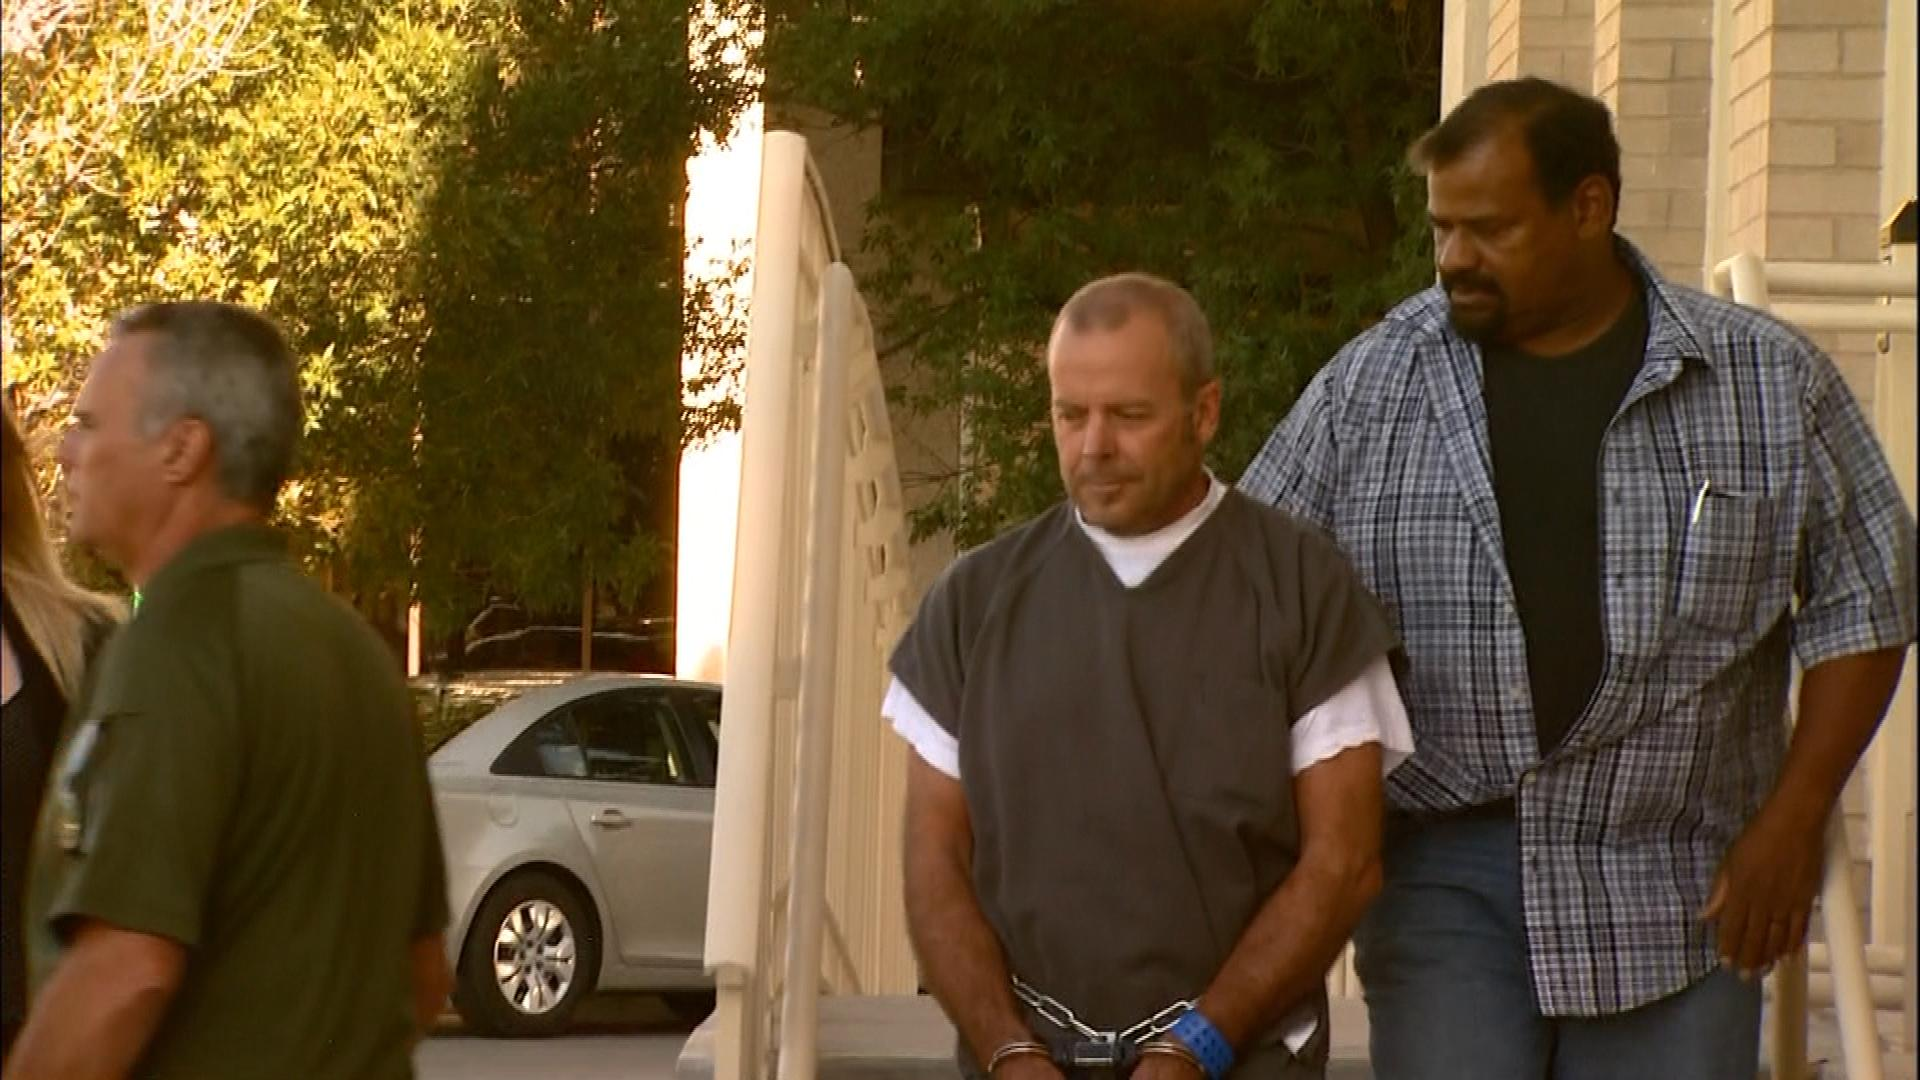 Dr. Joel Miller being escorted from court in August of 2013 (credit: CBS)